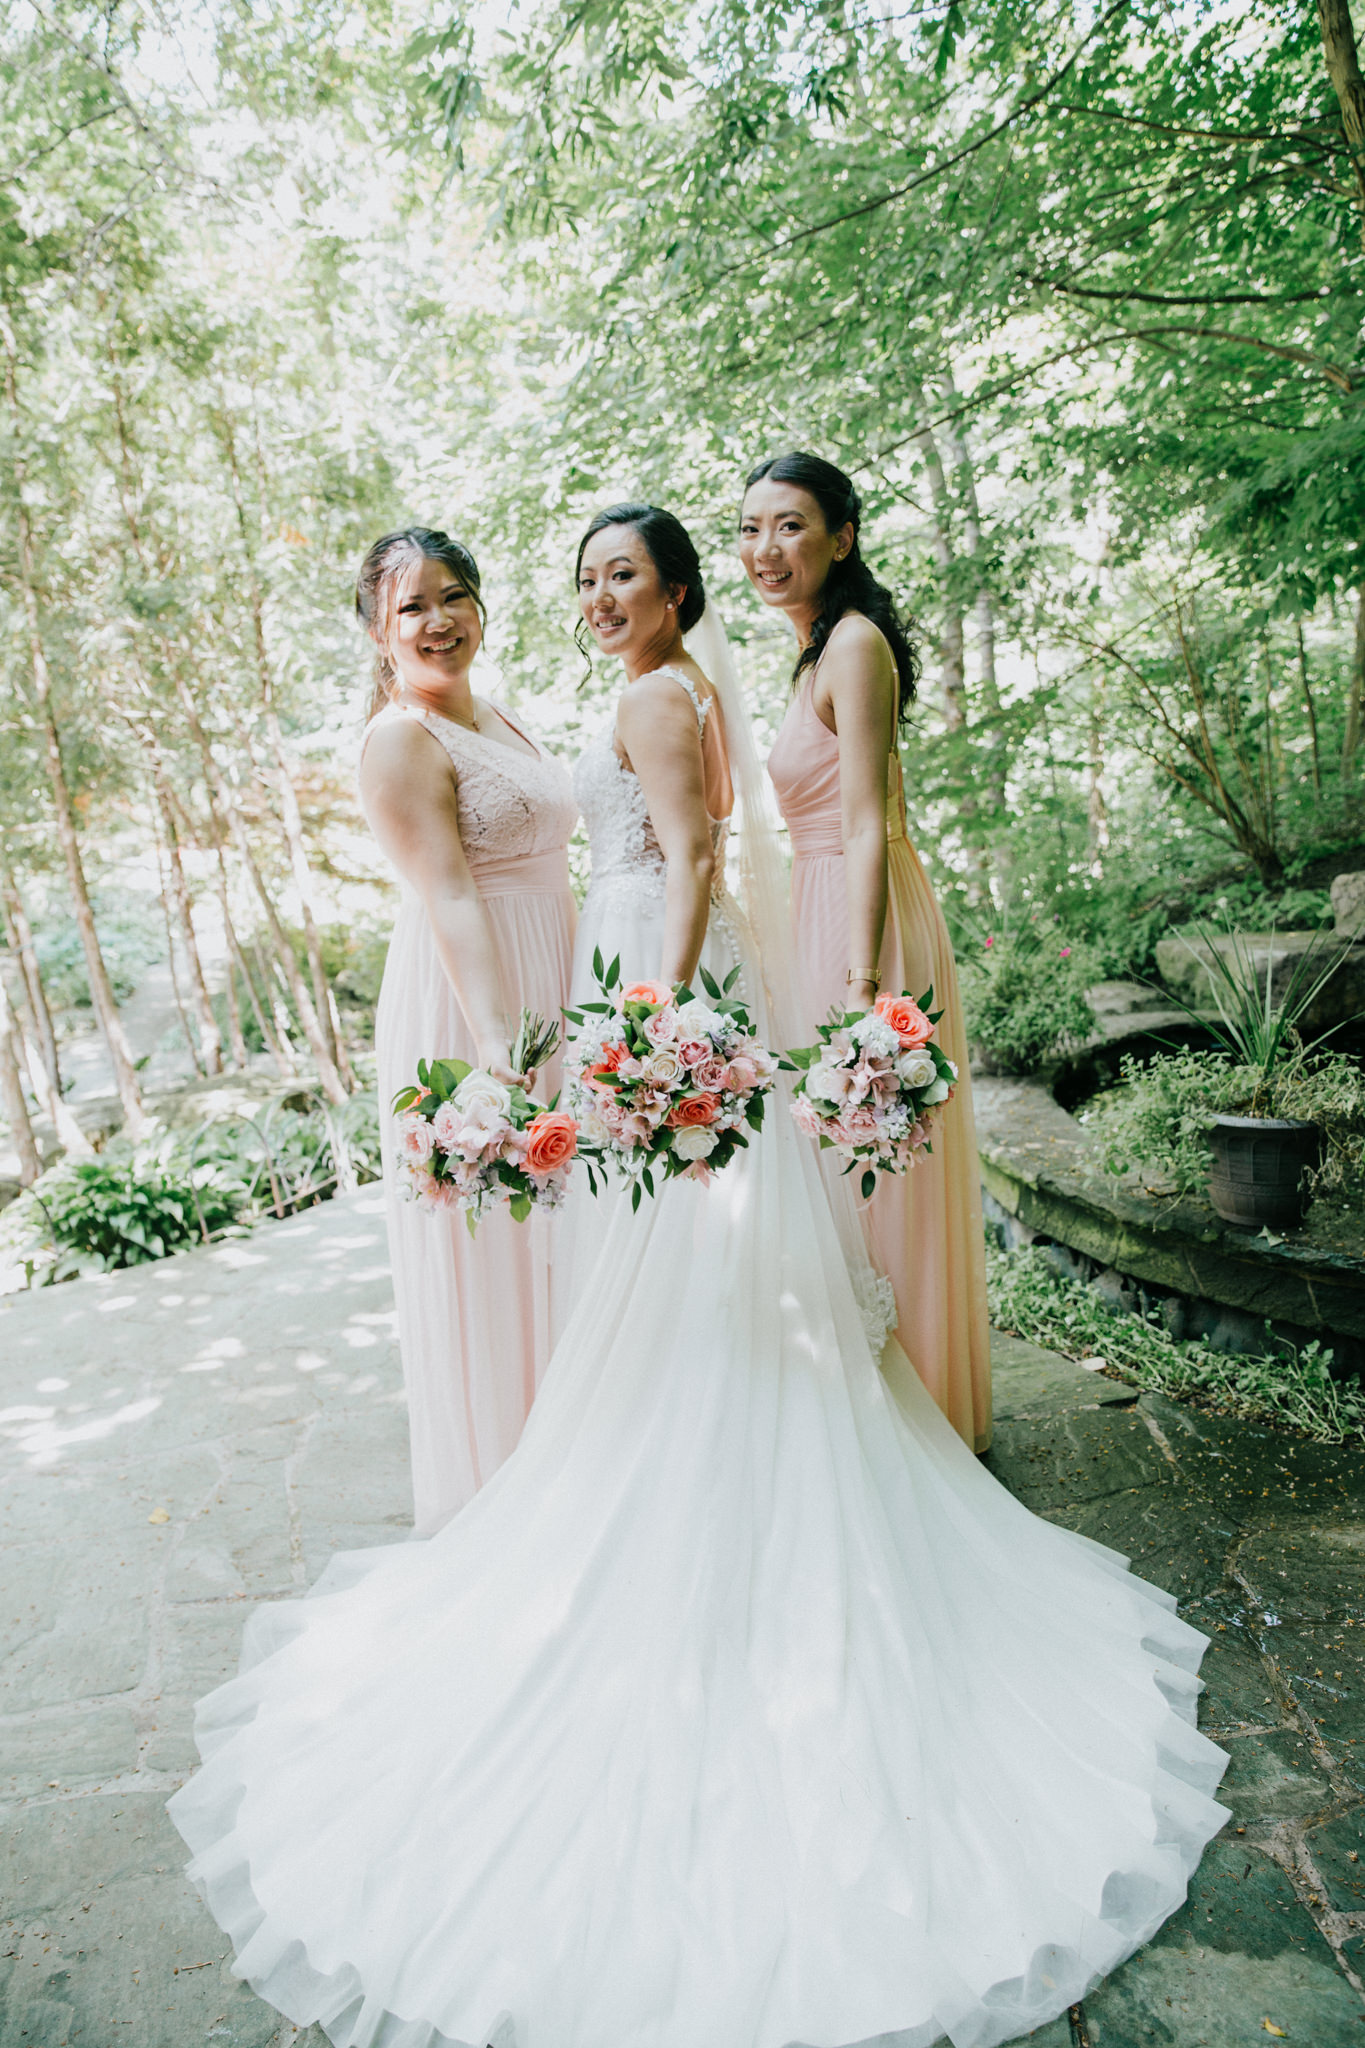 bride and bridesmaids posing for a photo